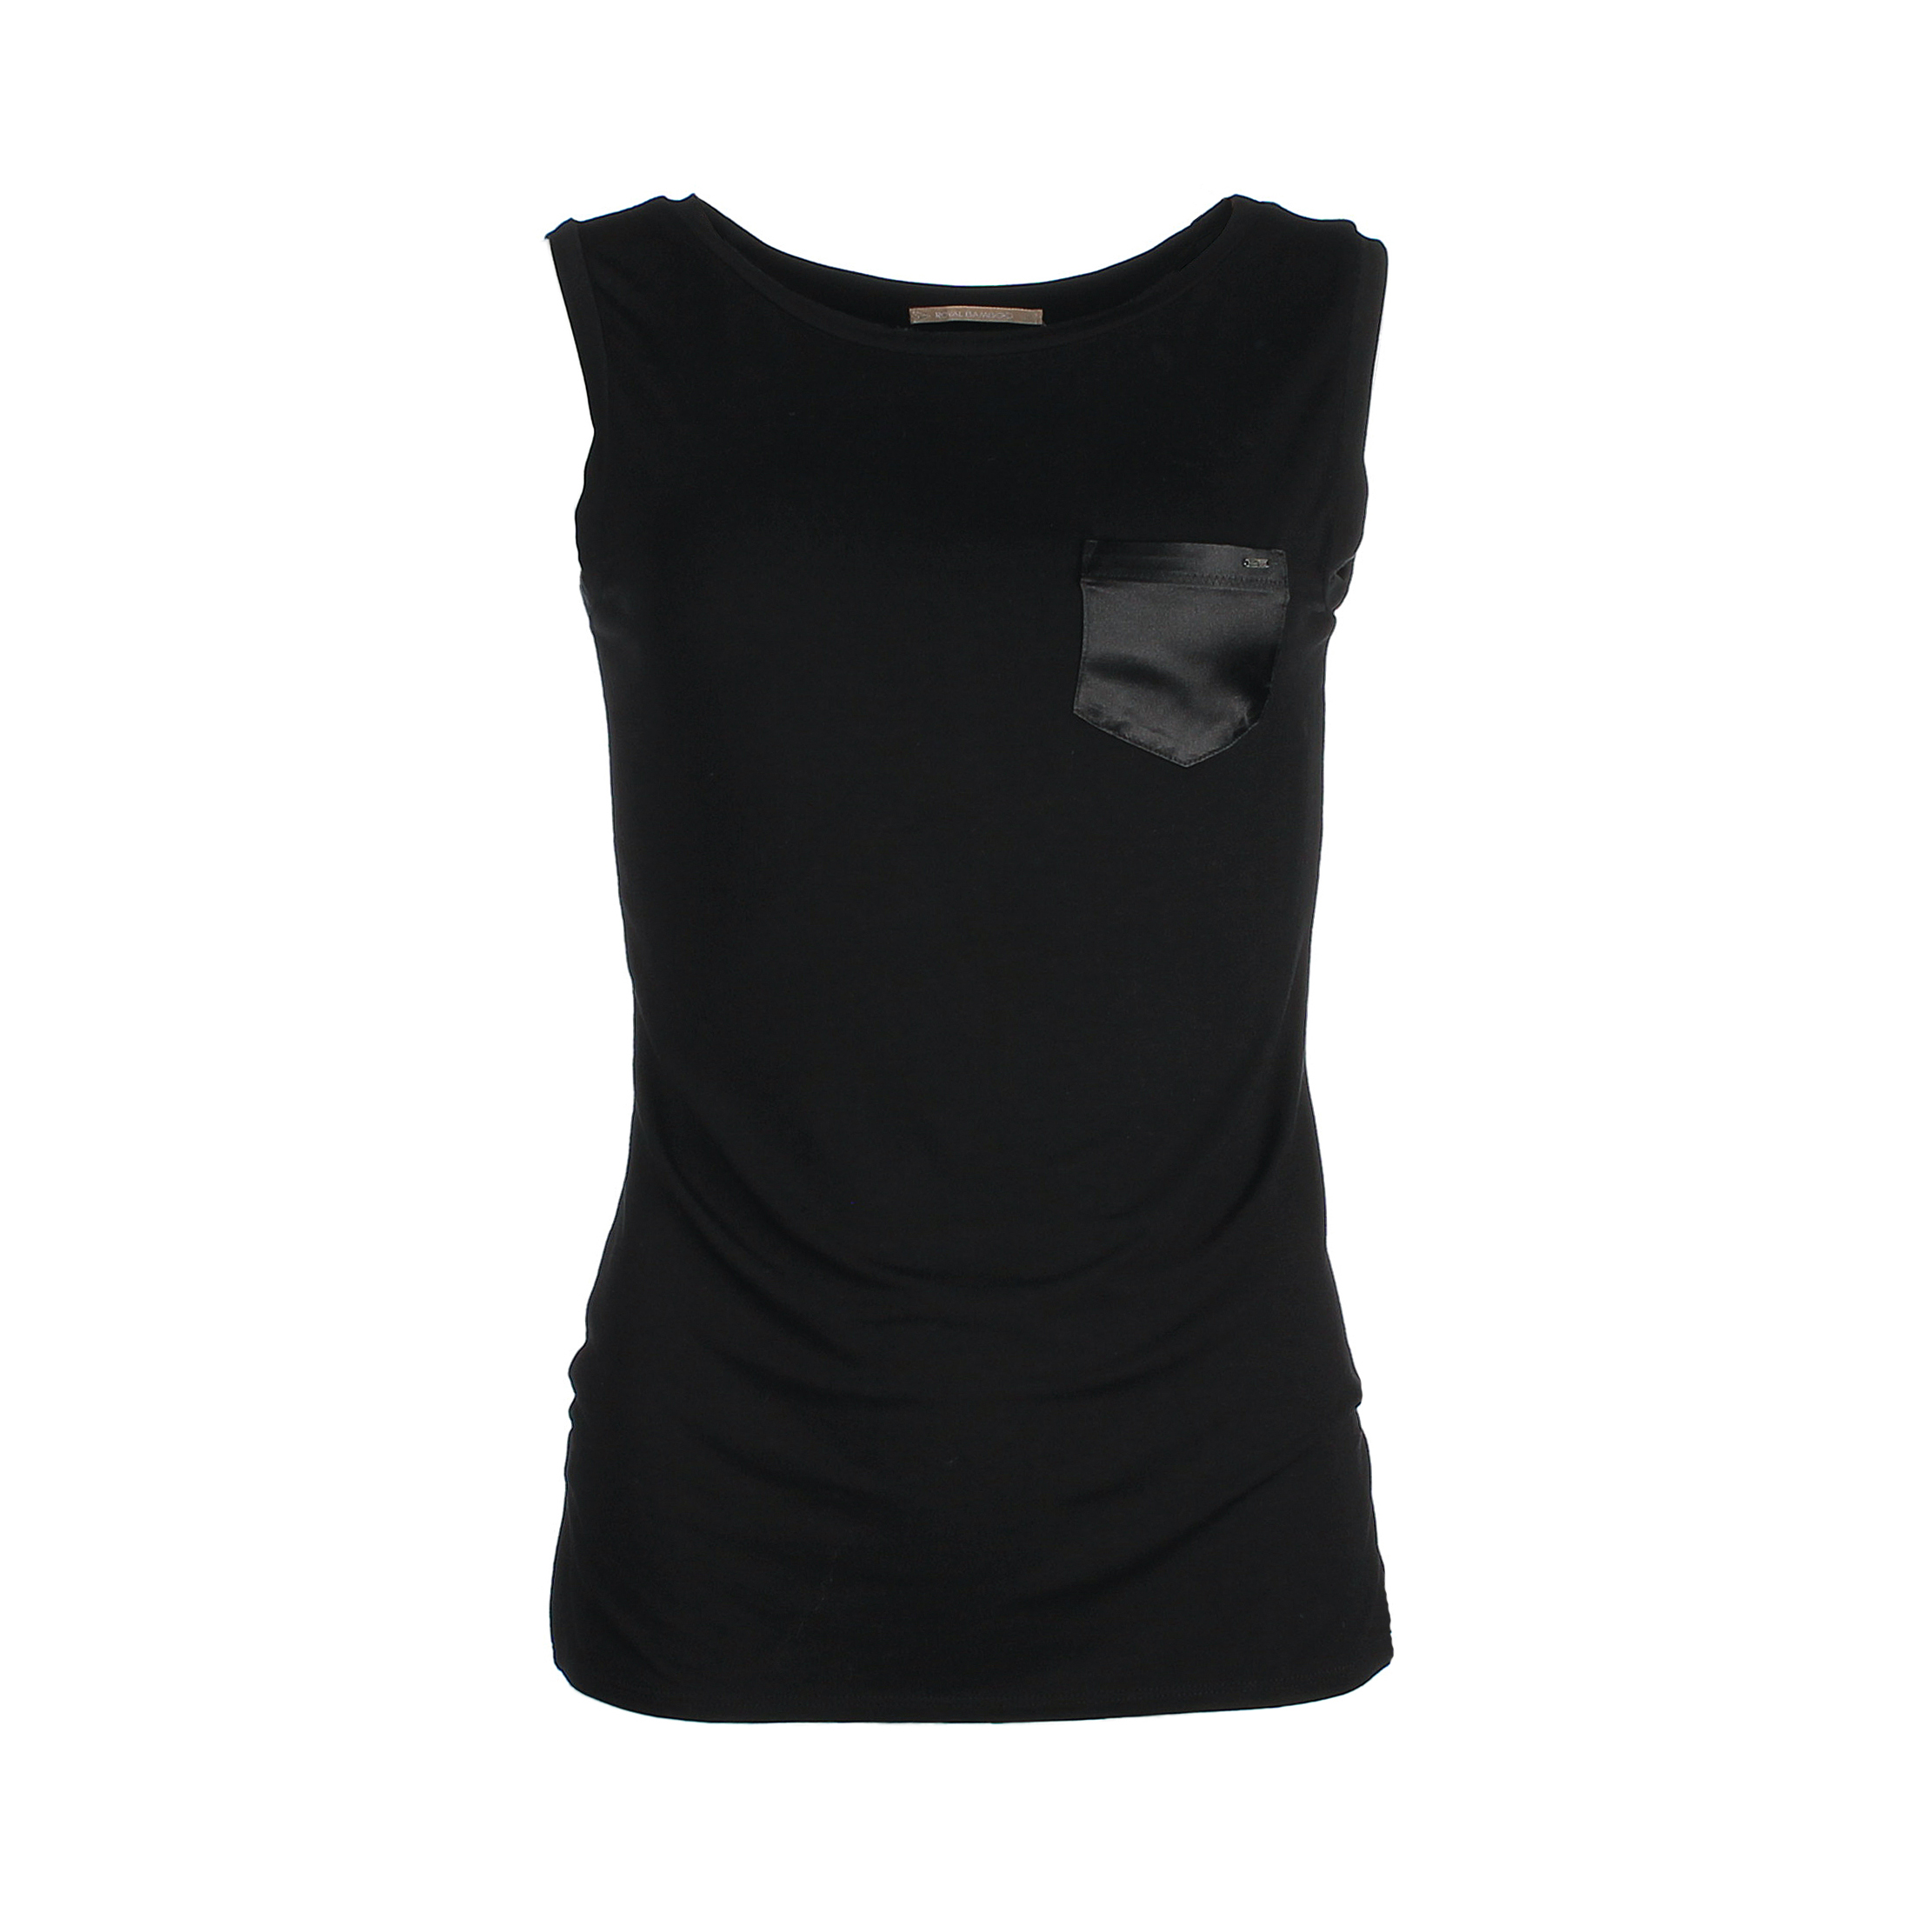 Sleeveless chest-pocket top bamboo - black - Mouwloze top borstzakje - zwart